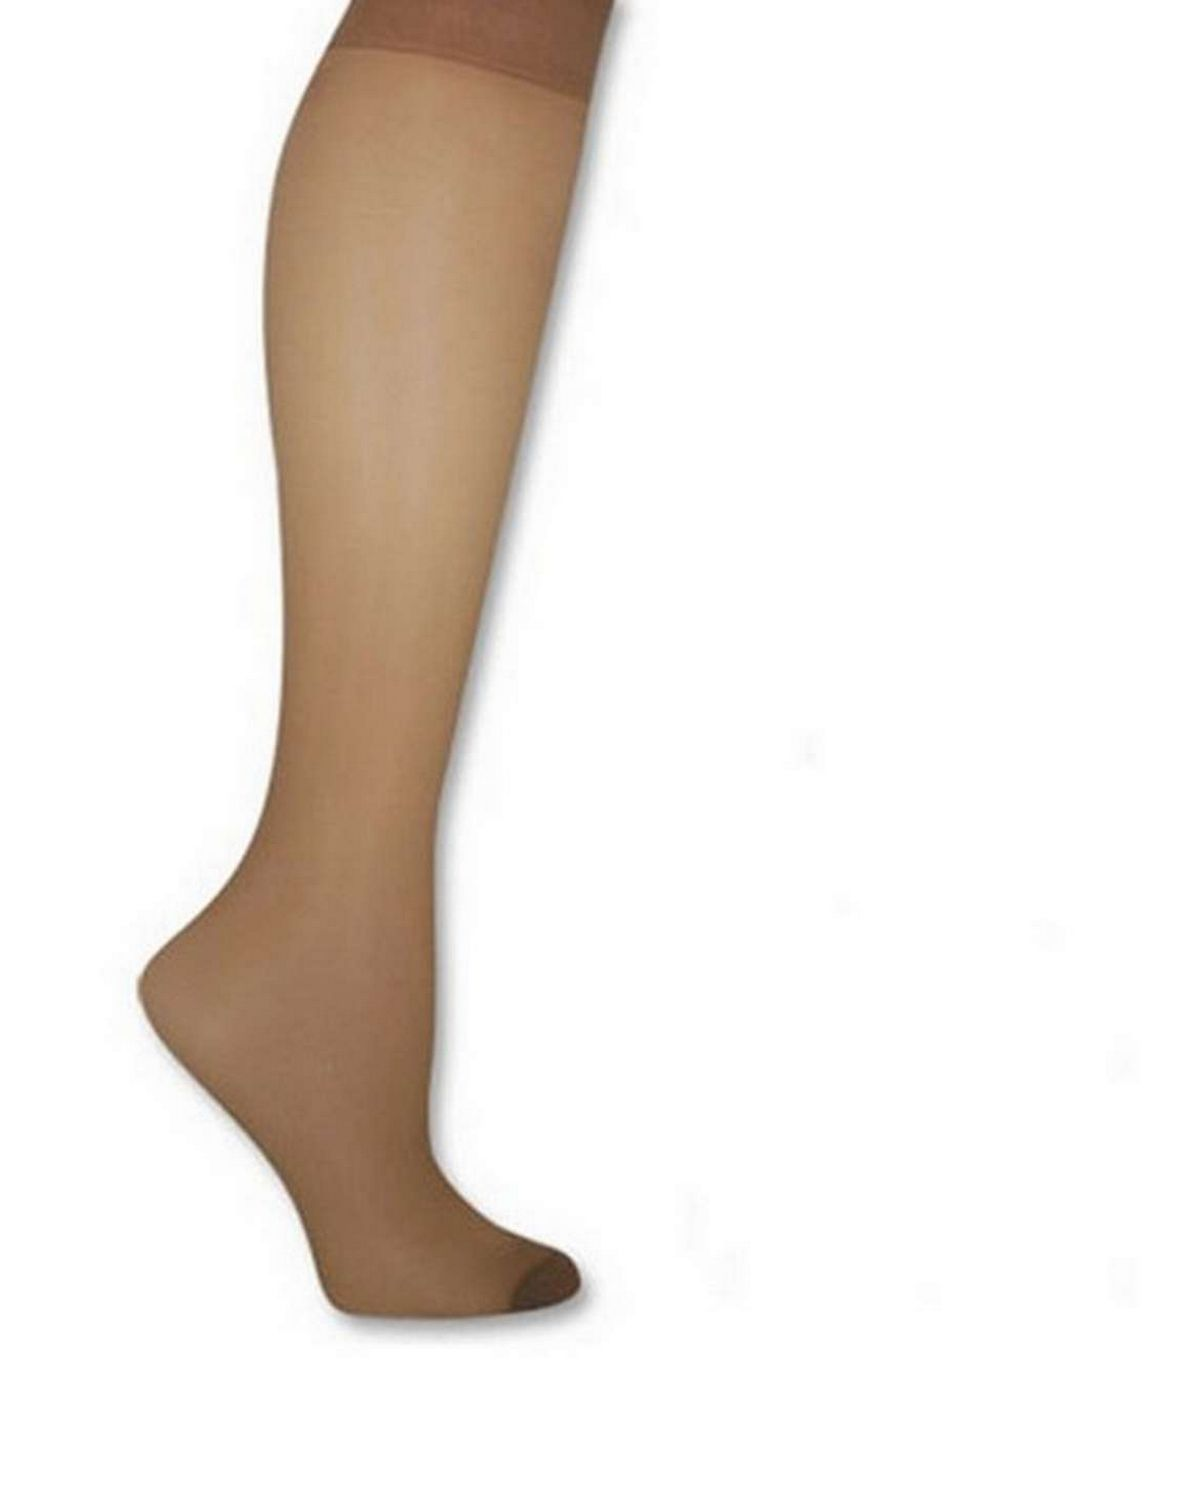 044968528a6 Buy L Eggs 39900 Leggs Everyday Knee Highs RT 10 Pair